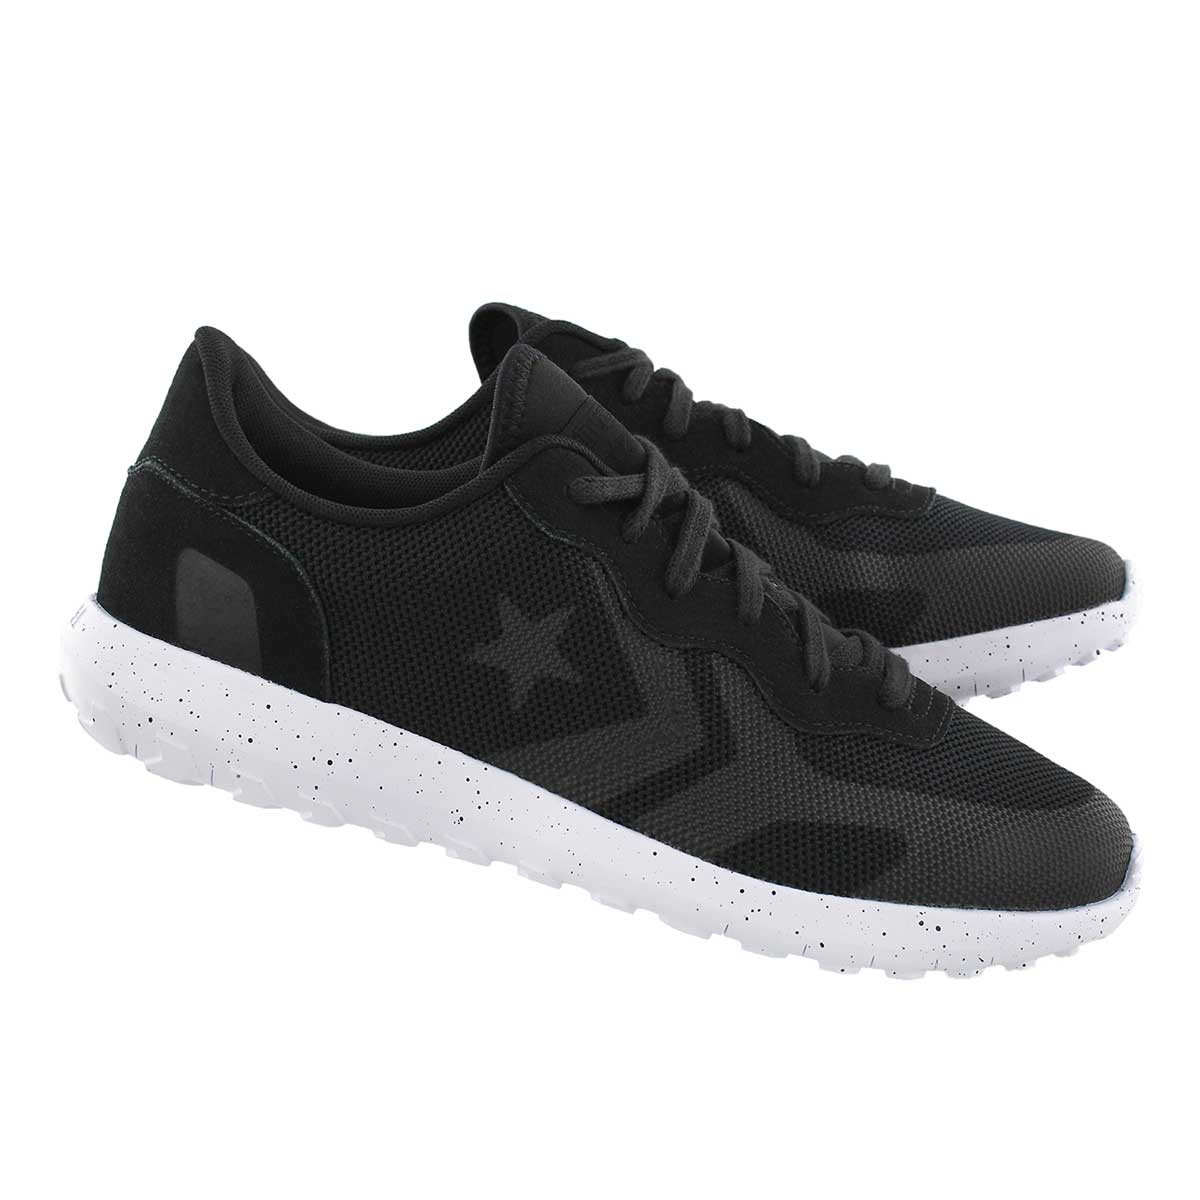 Mns Thunderbolt black lace up sneaker